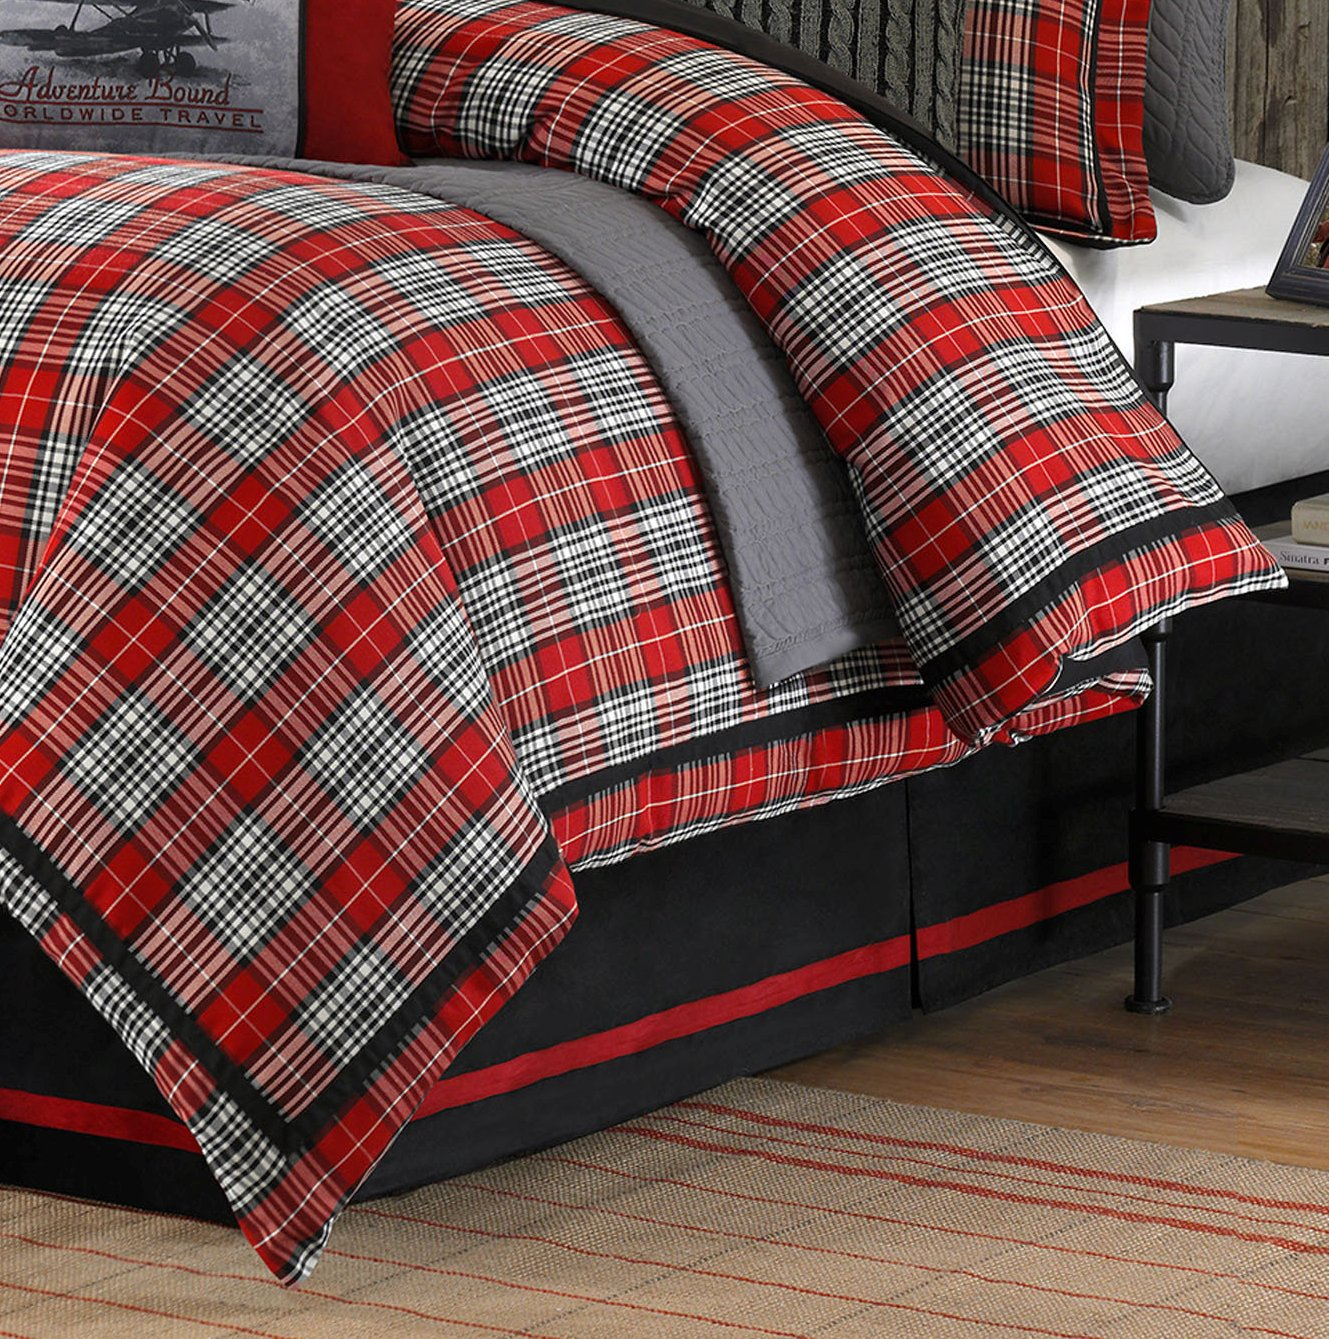 spin down fullqueen plush comfort mini reversible maclachlan microfiber blue prod home comforter vcny set montana red premier black alternative plaid